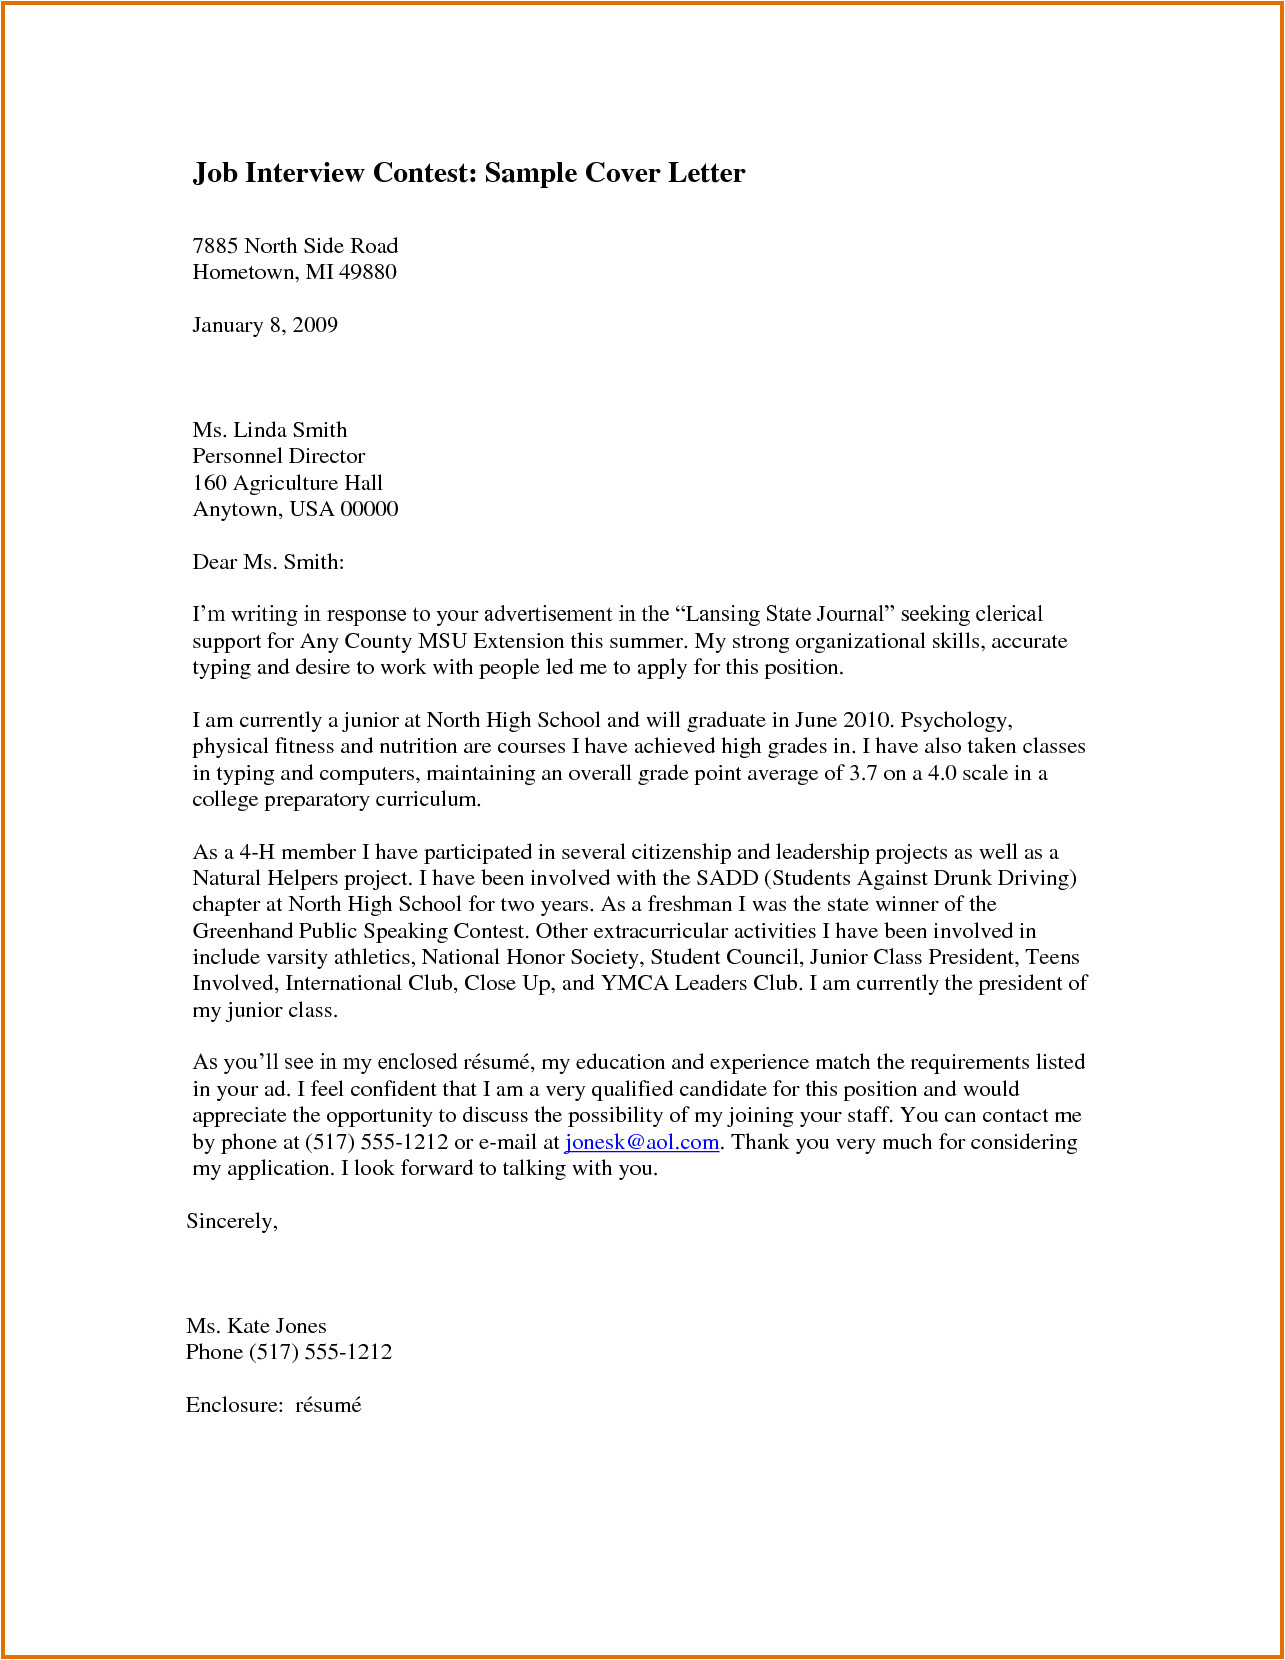 How to Write A Cover Letter for An Interview Job Interview Cover Letterreference Letters Words